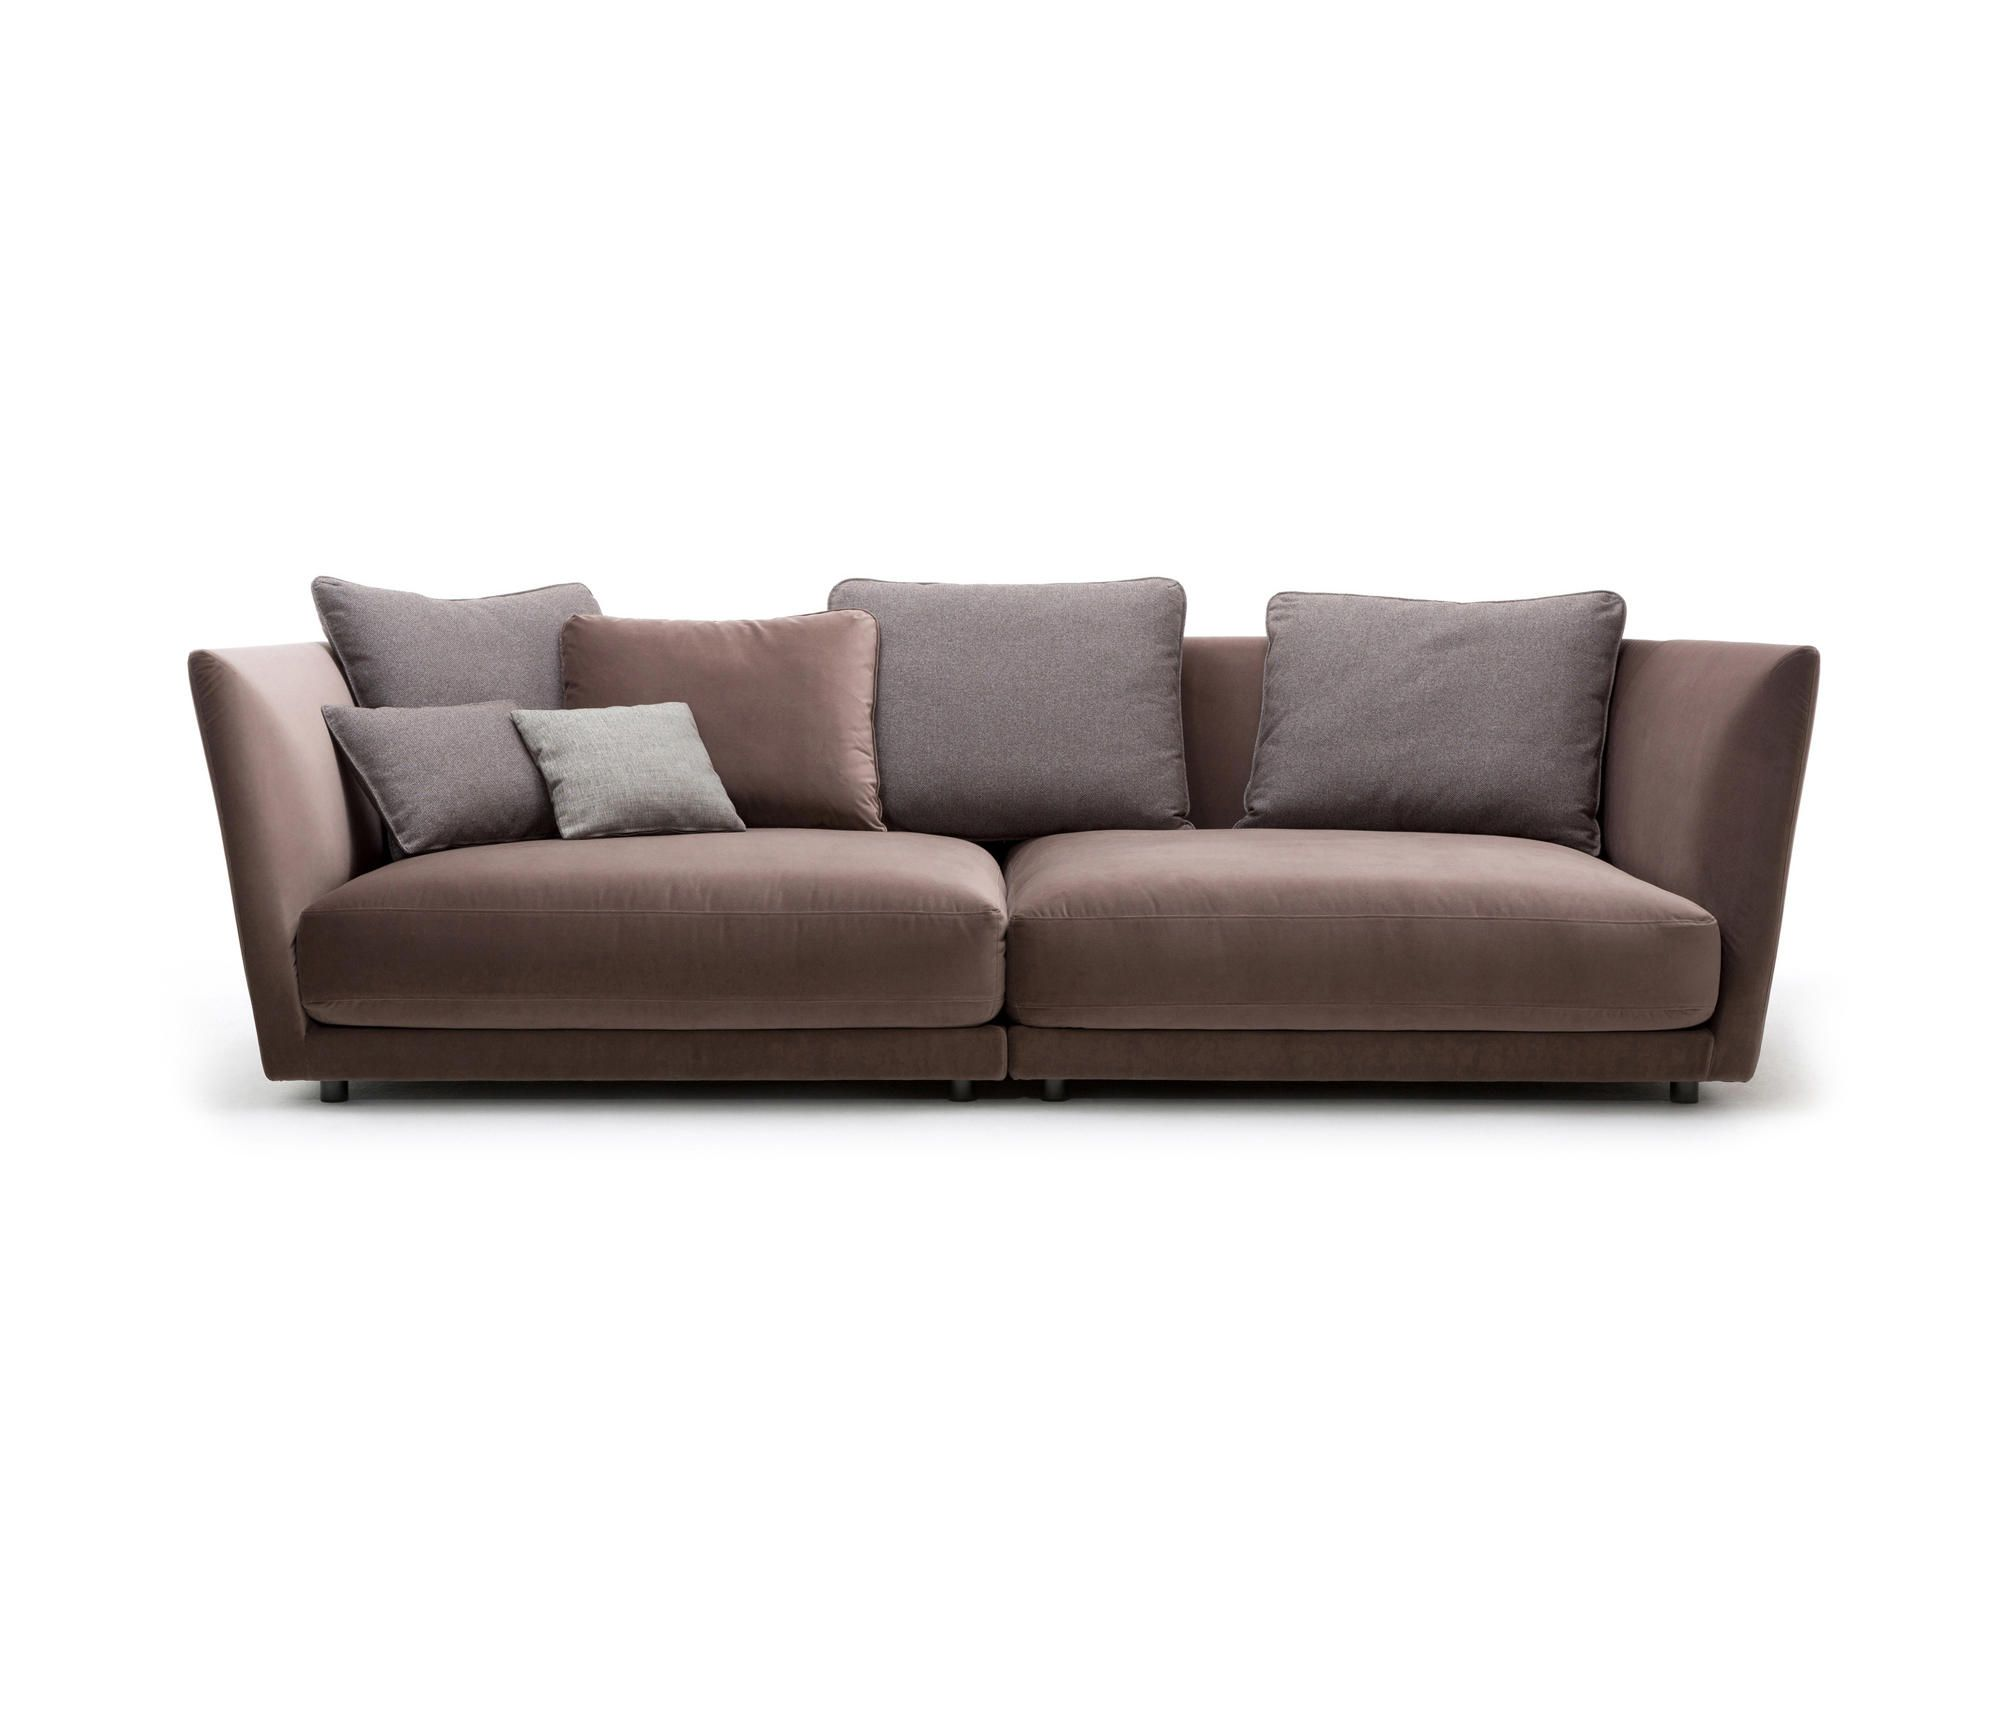 Rolf Benz Sofa Tondo Rolf Benz Tondo Lounge Sofas From Rolf Benz Architonic Ffe